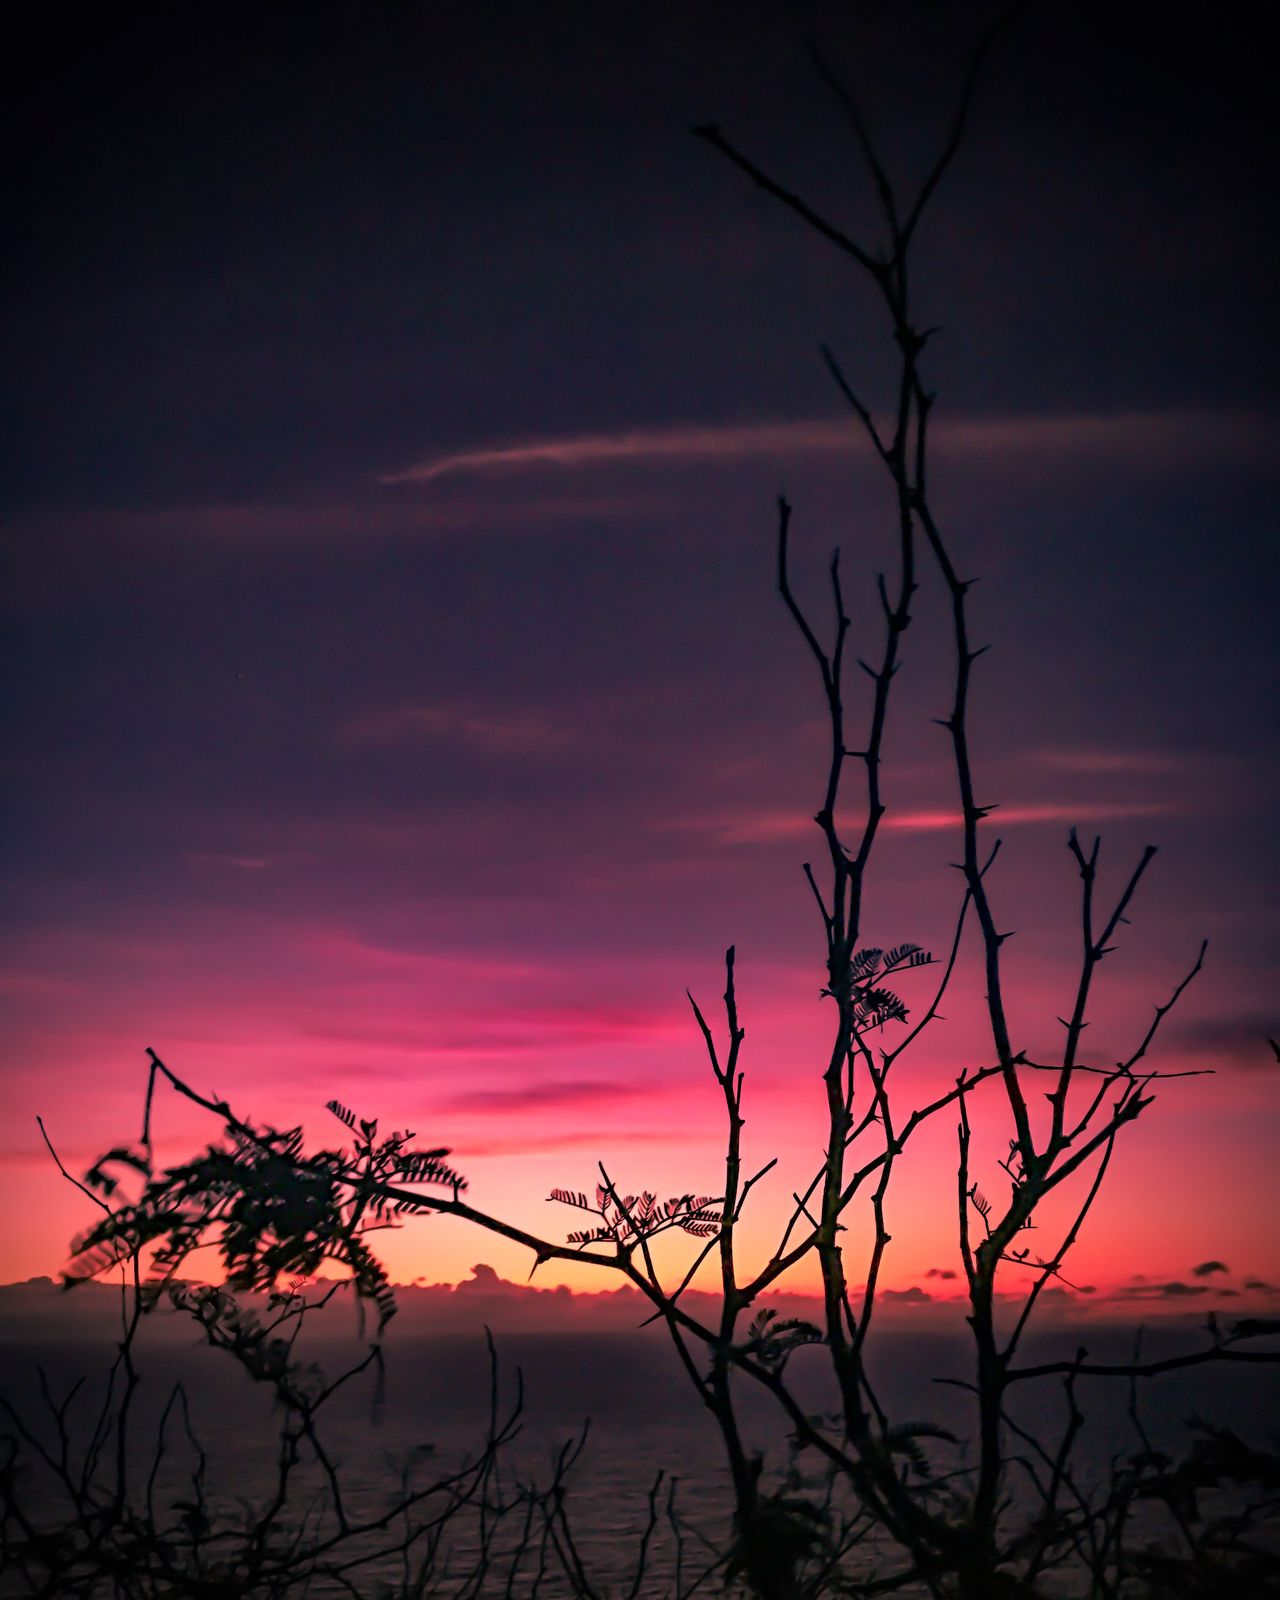 Sunset Nature Tree Beauty In Nature Sky No People Silhouette Tranquility Growth Outdoors Scenics Plant Tranquil Scene Branch Day Tropical Tropical Climate The Week Of Eyeem Eyeemphotography Enjoying Life Sky And Clouds EyeEm Gallery EyeEmBestPics Hello World Silhouette